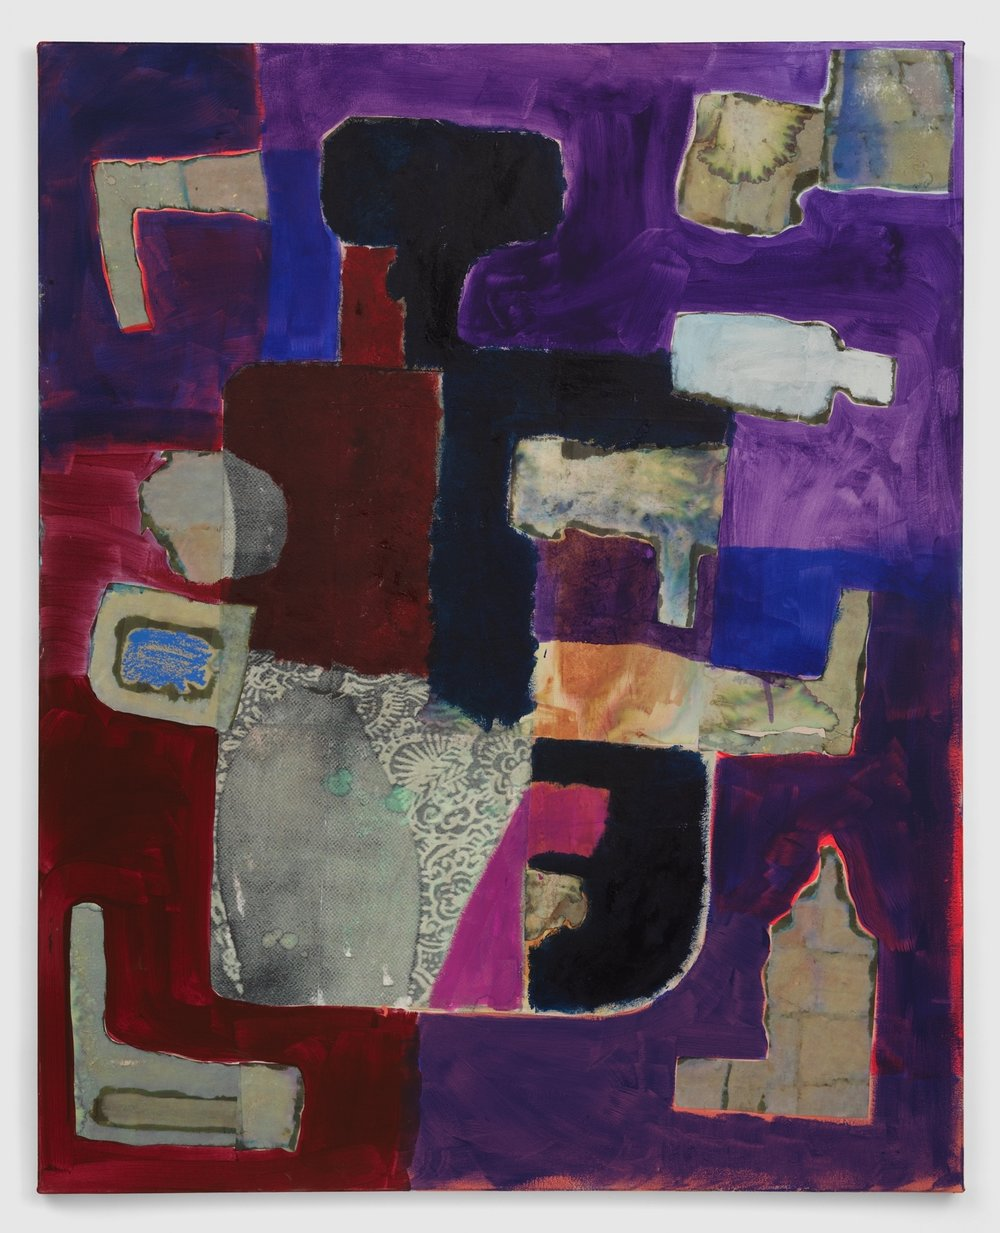 Acrylic, oil, and collage on canvas  2018  60 x 48 inches